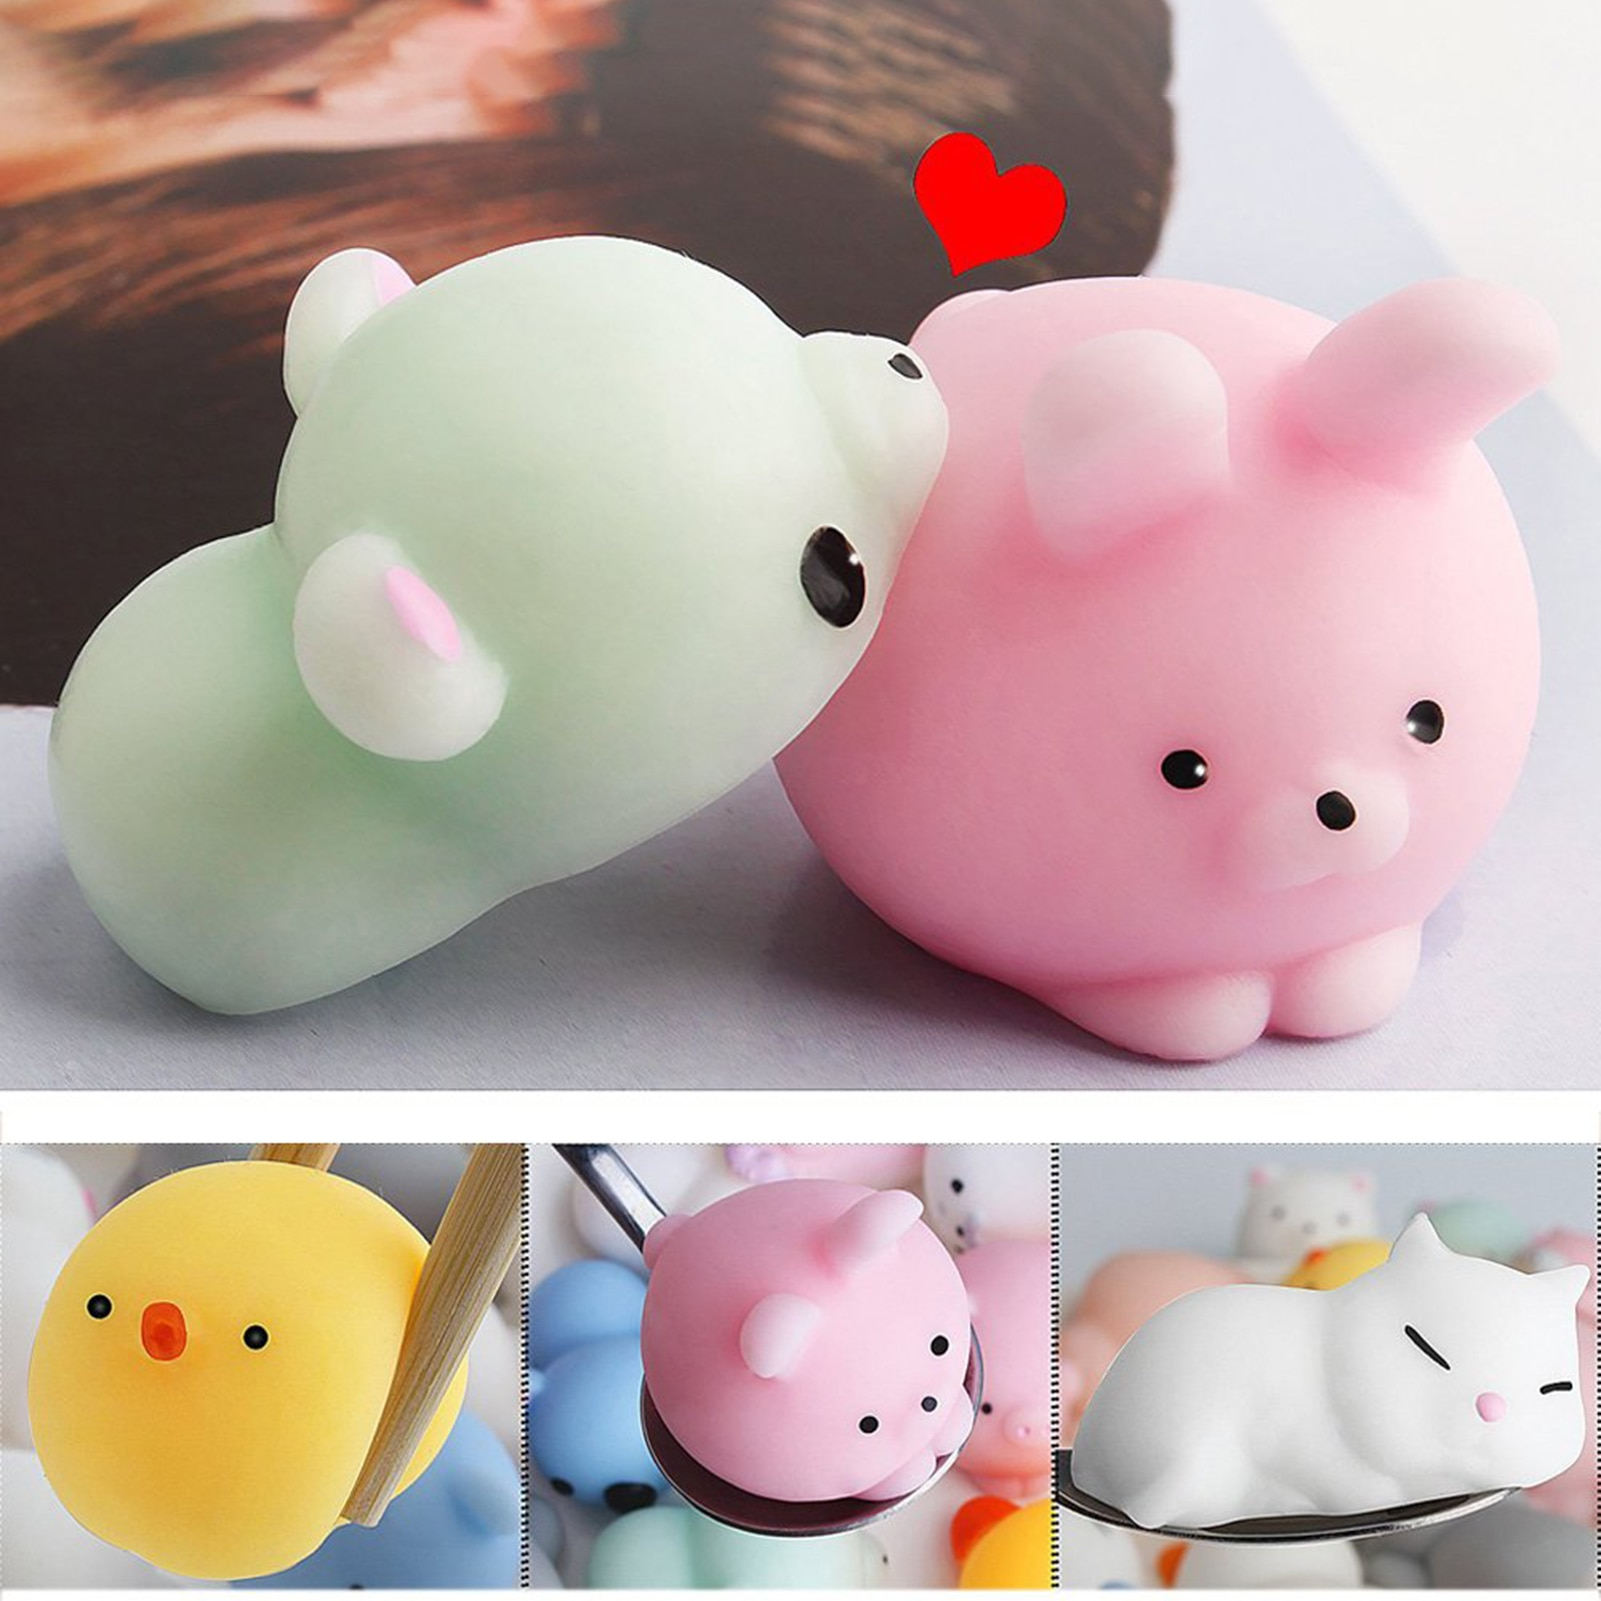 24 Pieces Squeeze Toys Cute Stress Relief Animal Squeeze Toy Antistress Abreact Ball Soft Sticky Cute Funny Gift enlarge